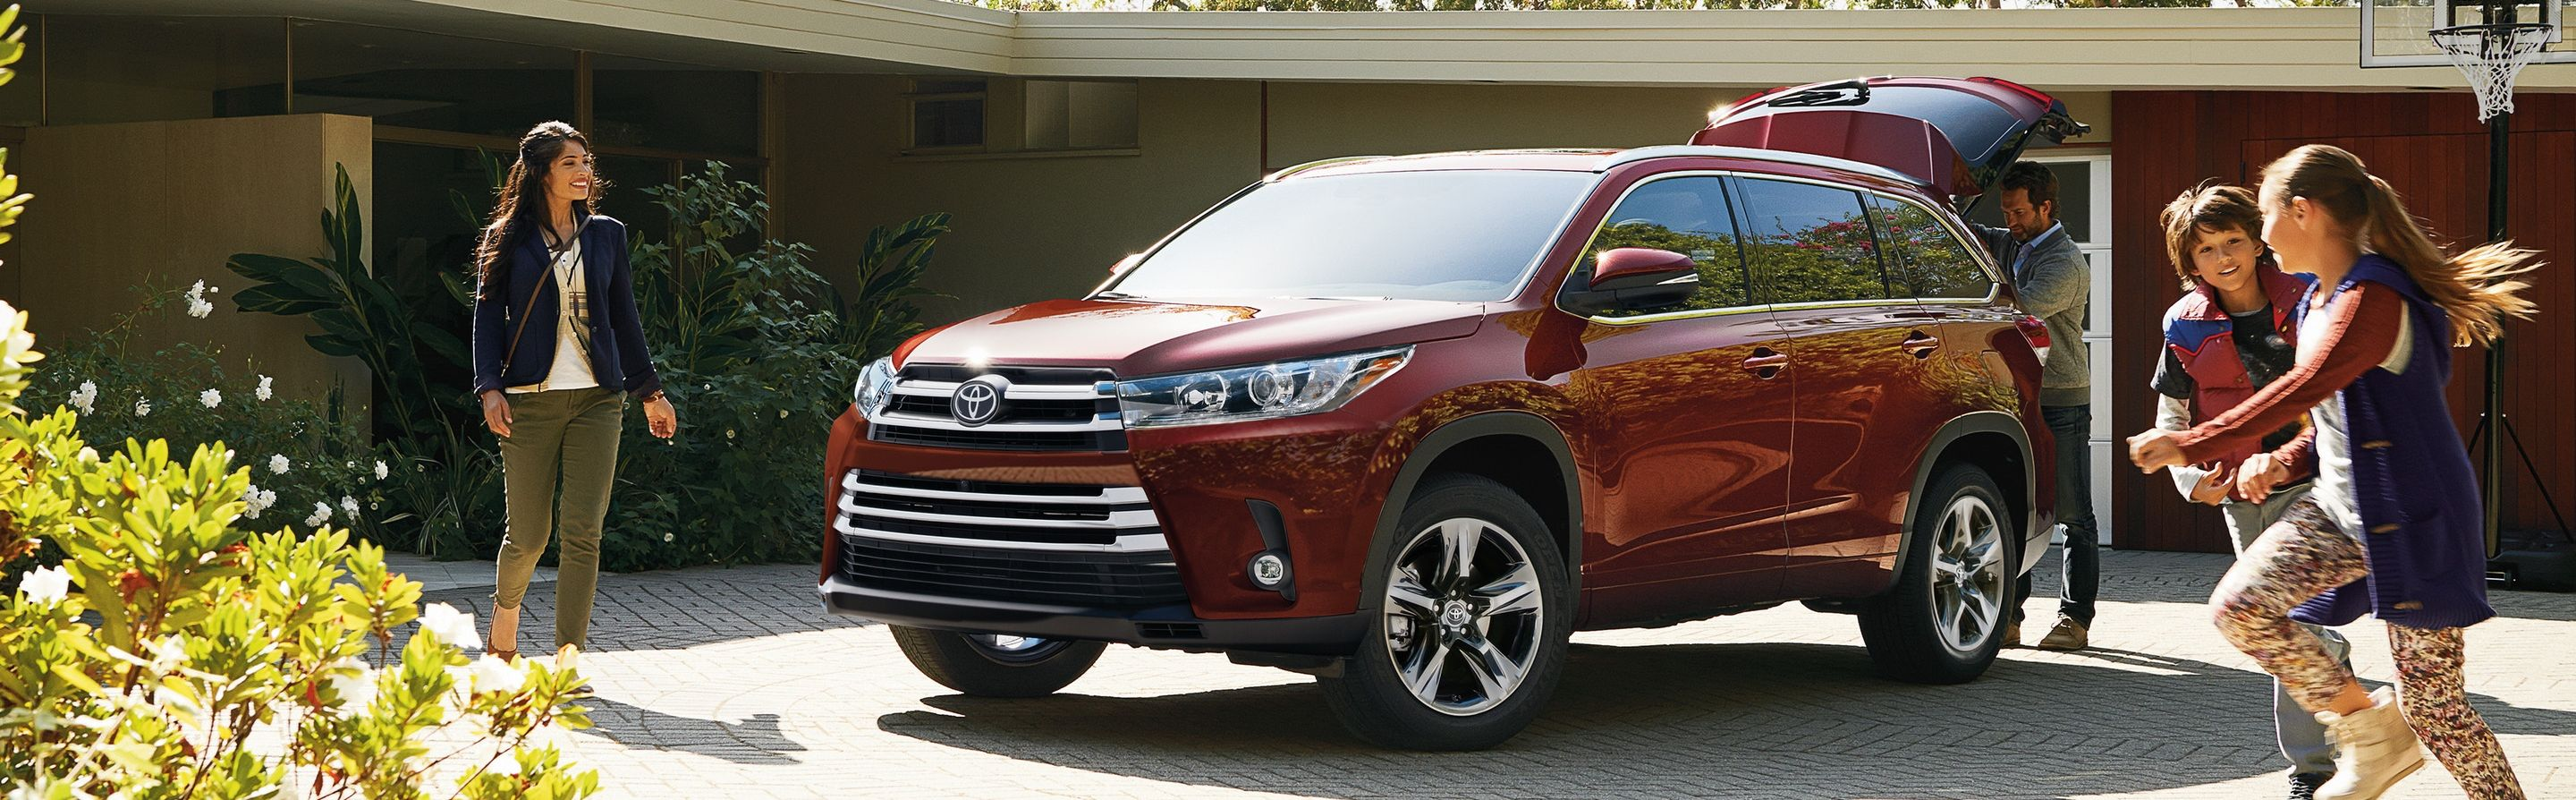 2019 Toyota Highlander for Sale near Swedesboro, NJ